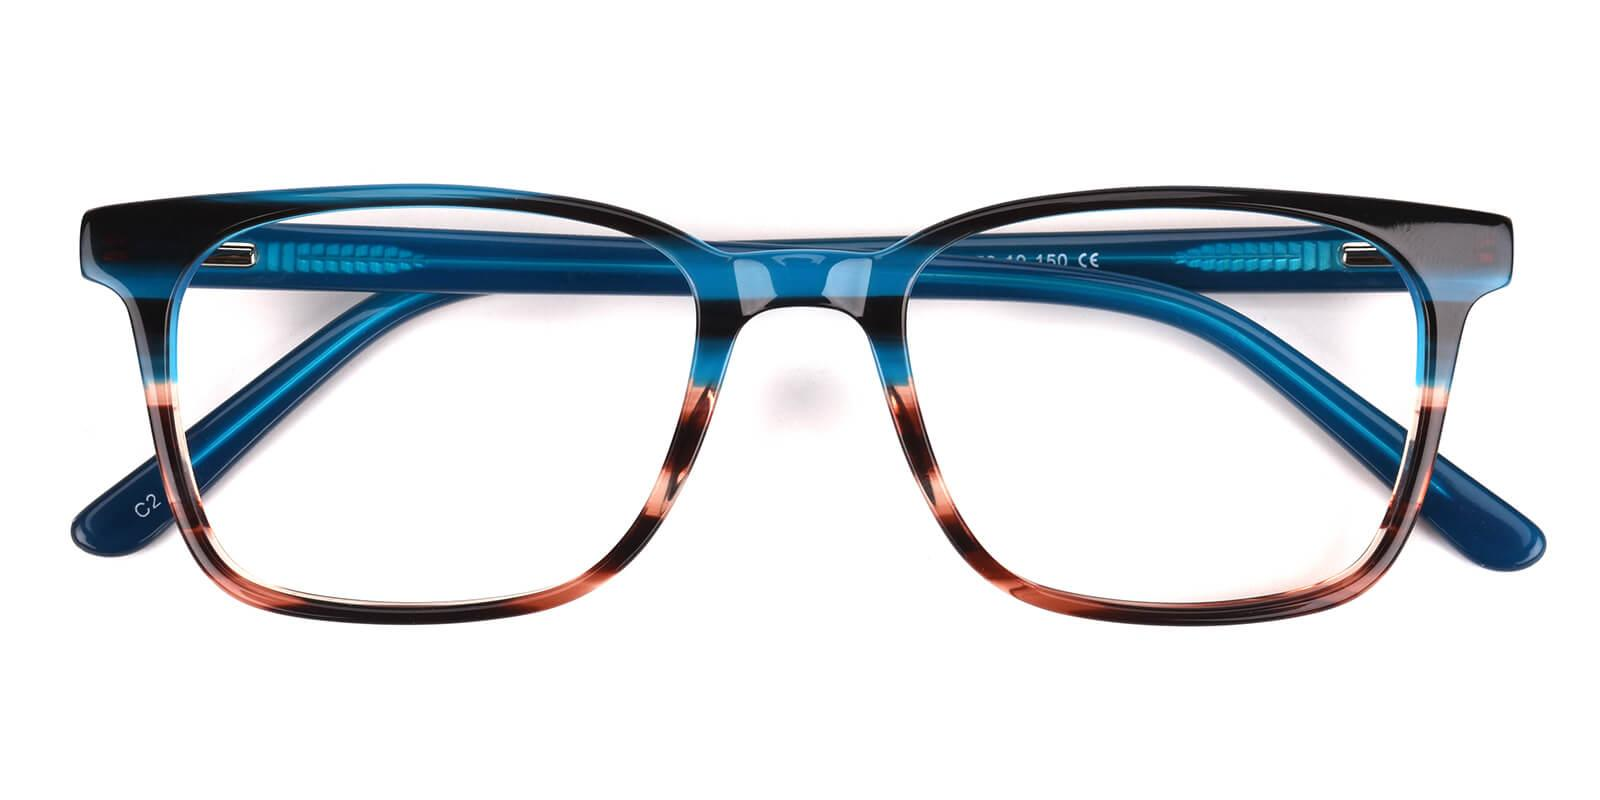 Kattan-Blue-Square-Acetate-Eyeglasses-detail